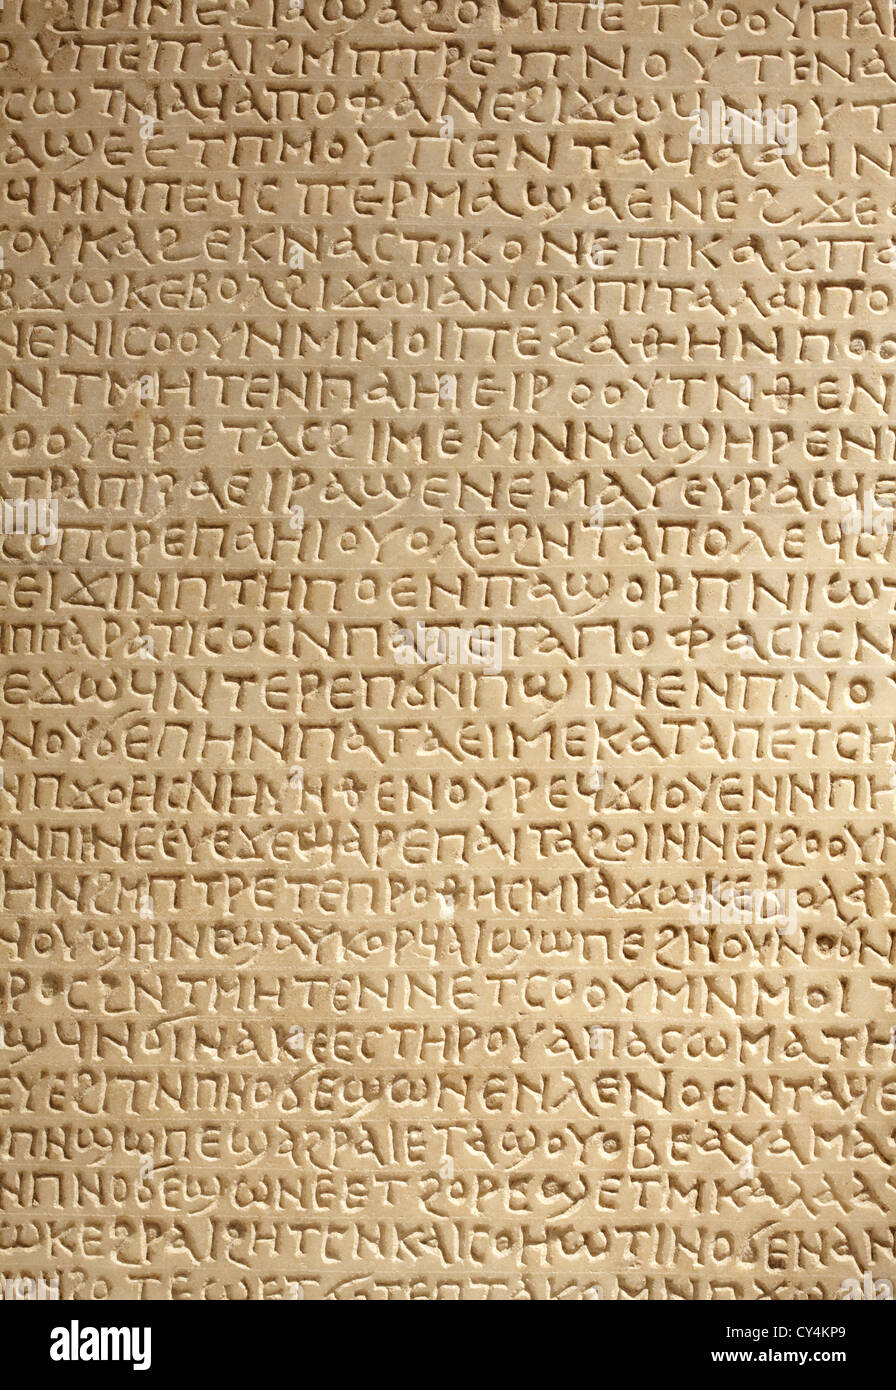 Ancient greek writing on stone background - Stock Image